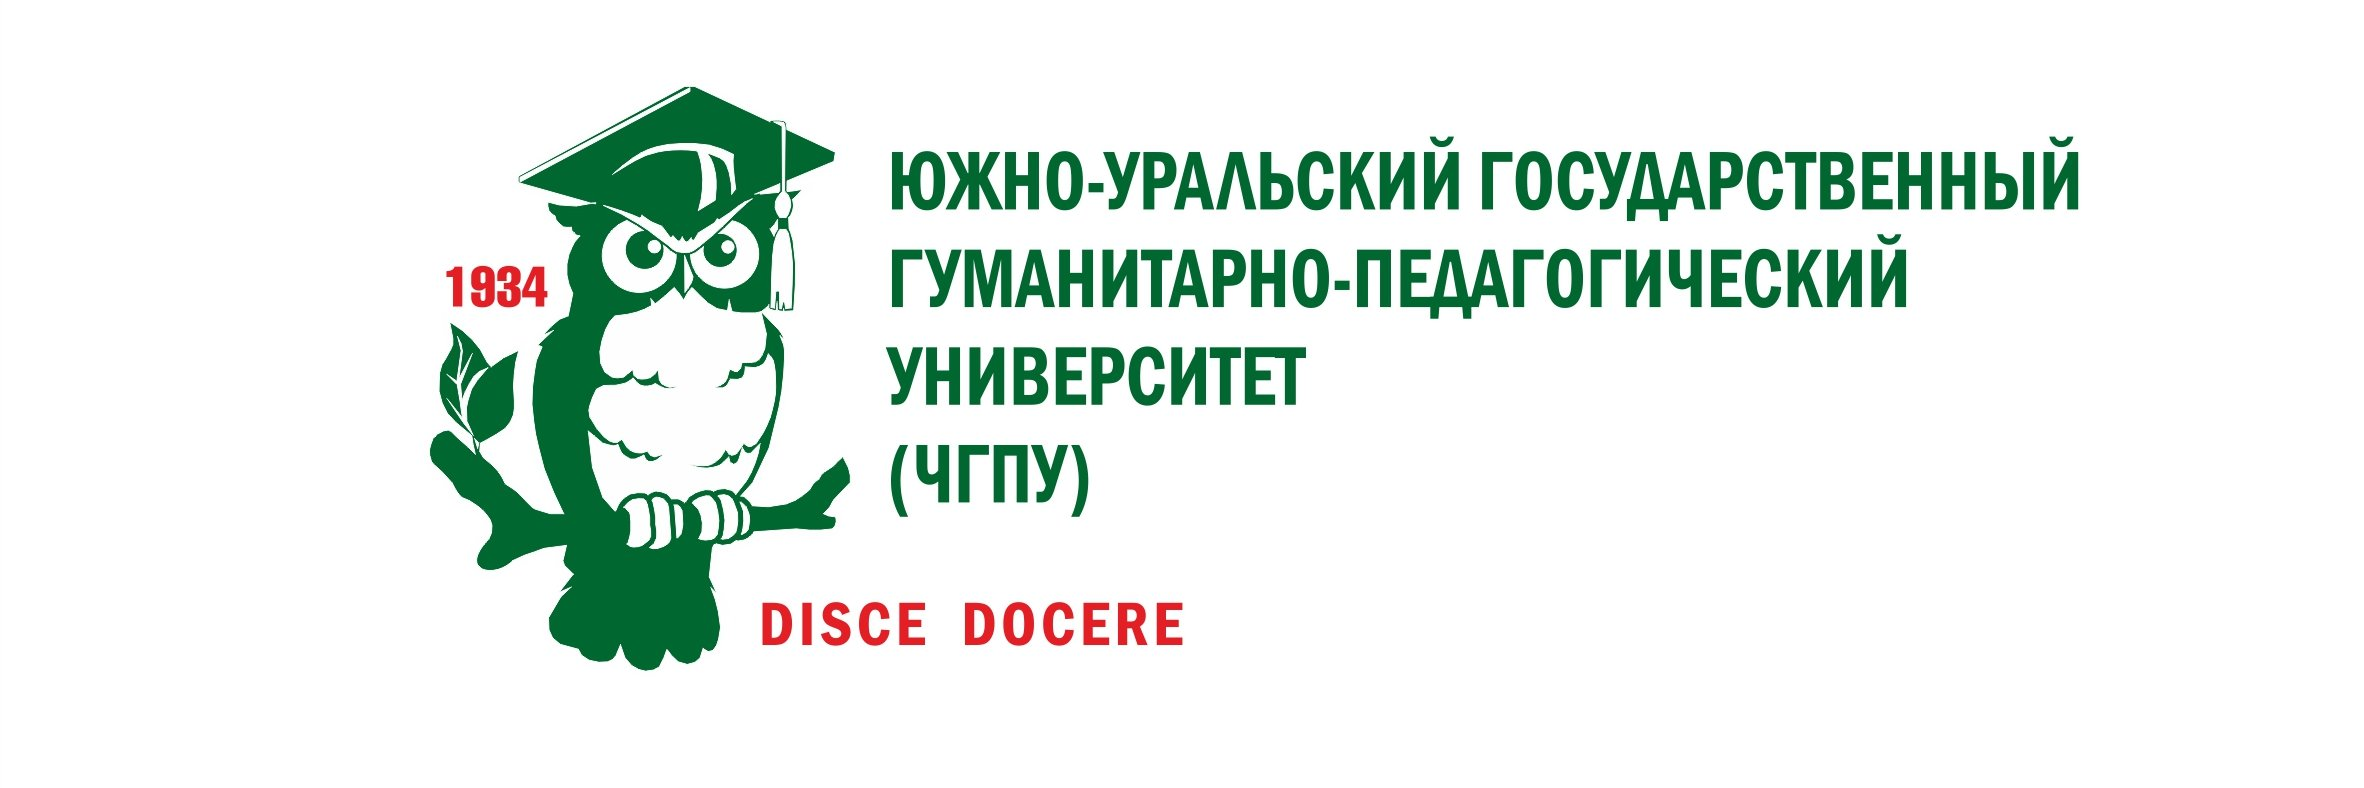 Chelyabinsk State Pedagogical University's official Twitter account